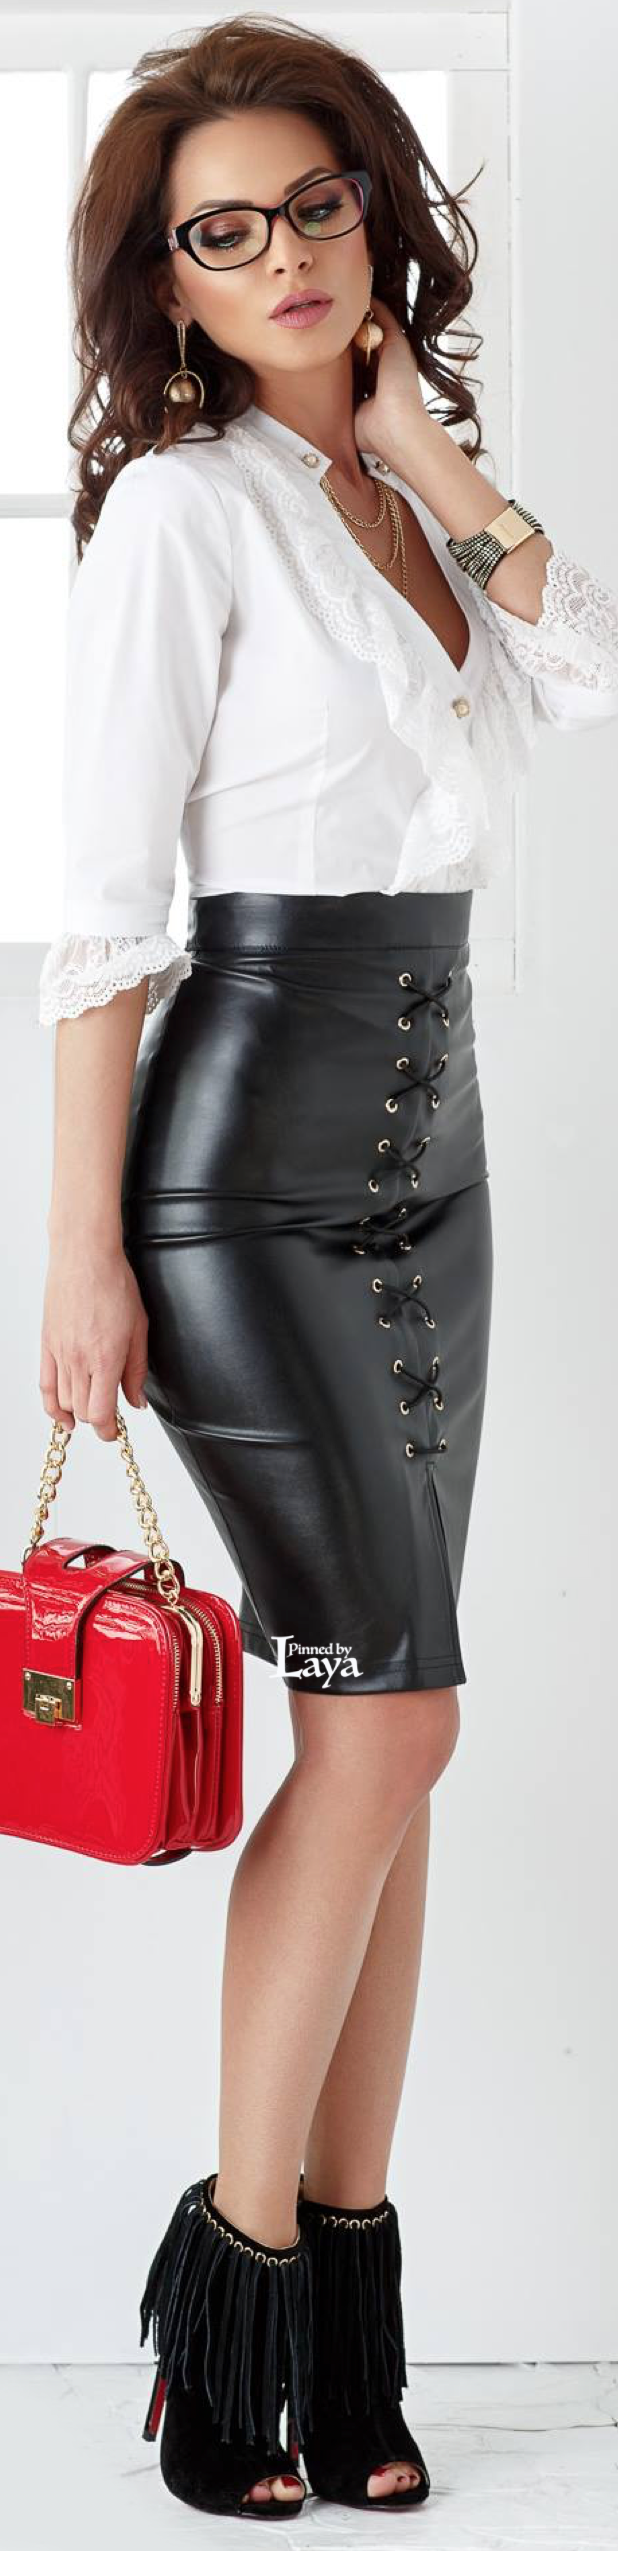 White blouse & black leather skirt | Denim / leather / fur ...